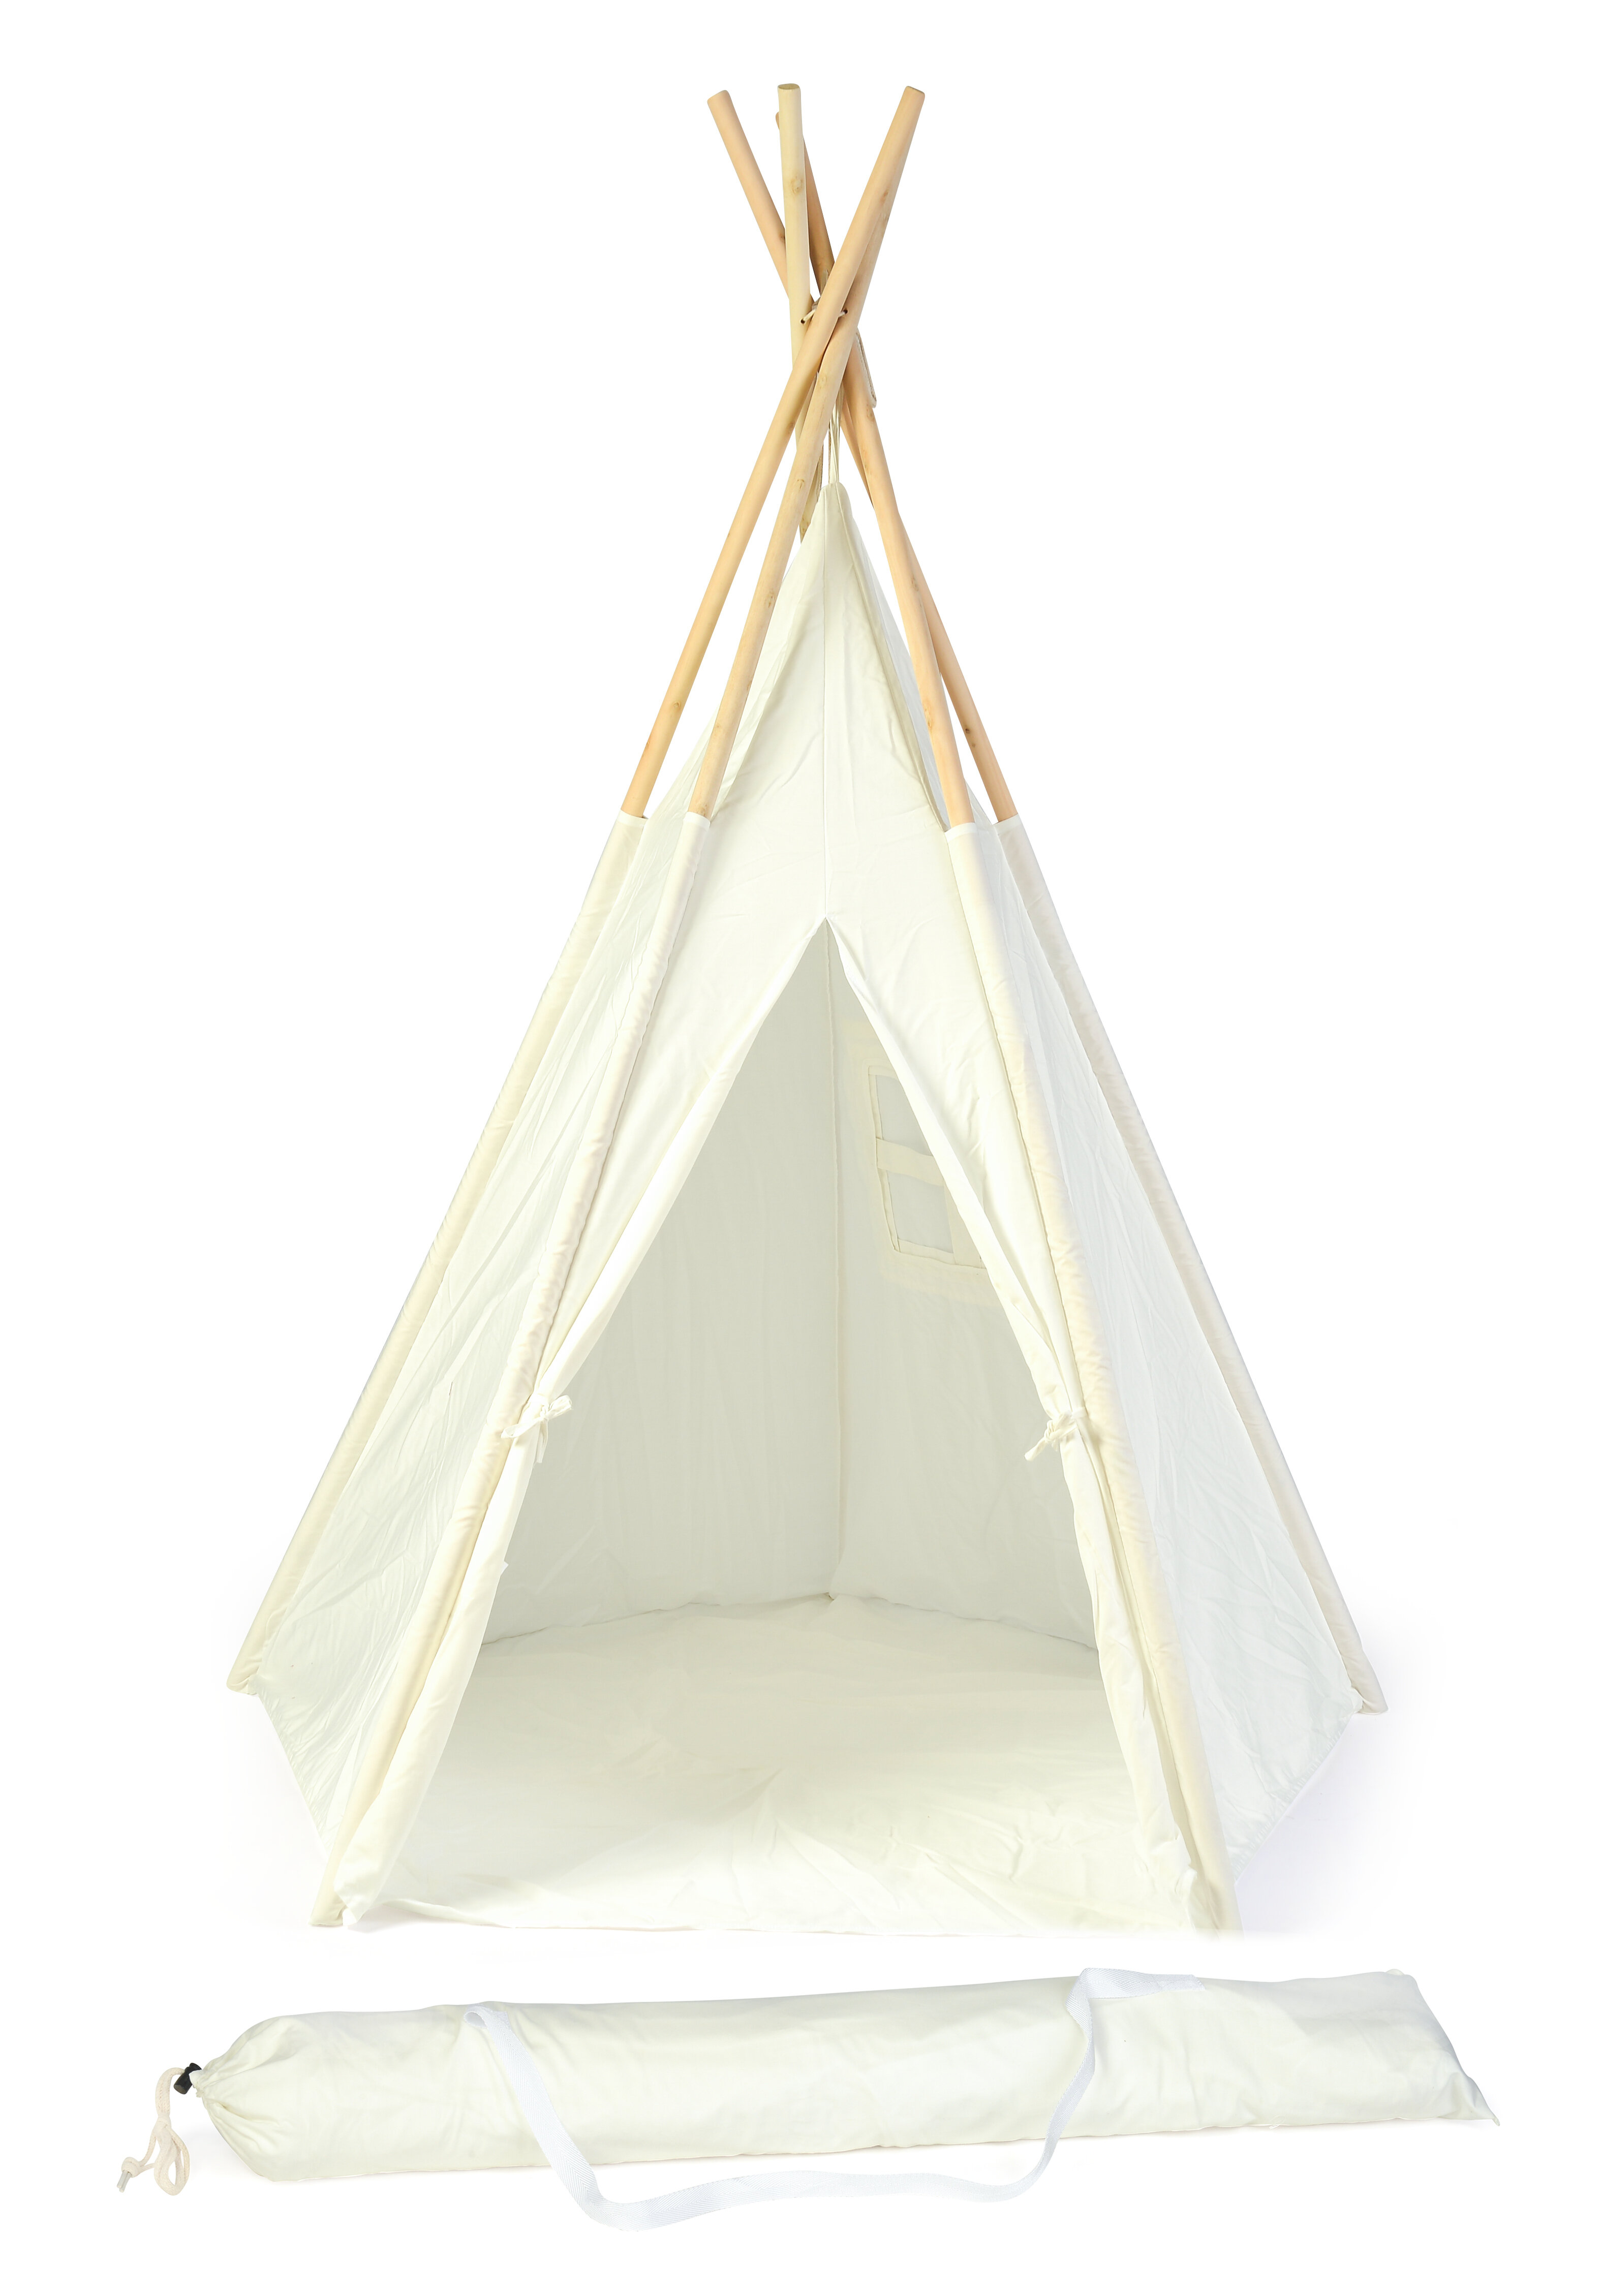 Trademark Innovations Triangular Play Tent With Carrying Bag Reviews Wayfair